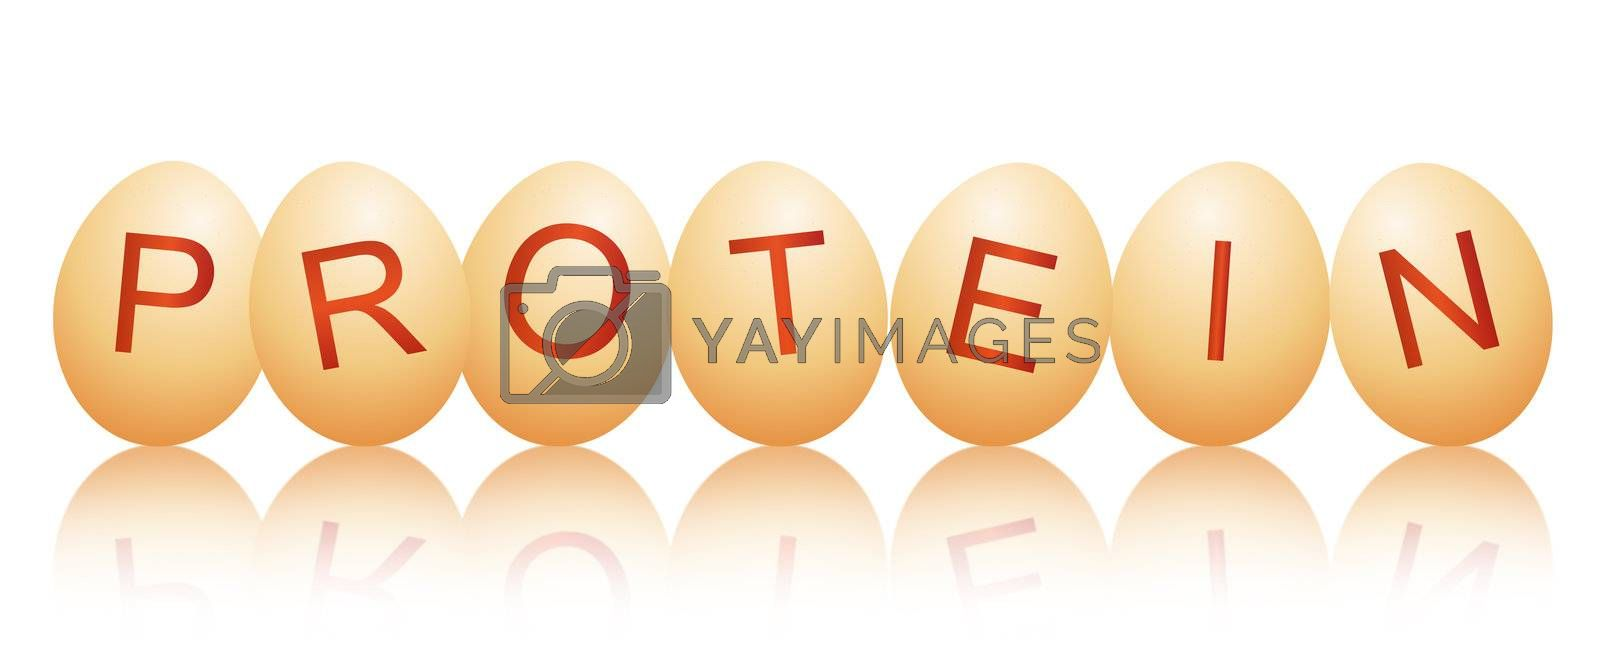 Illustration depicting a row of chicken eggs with letters spelling the word PROTEIN arranged over white and reflecting into the foreground.